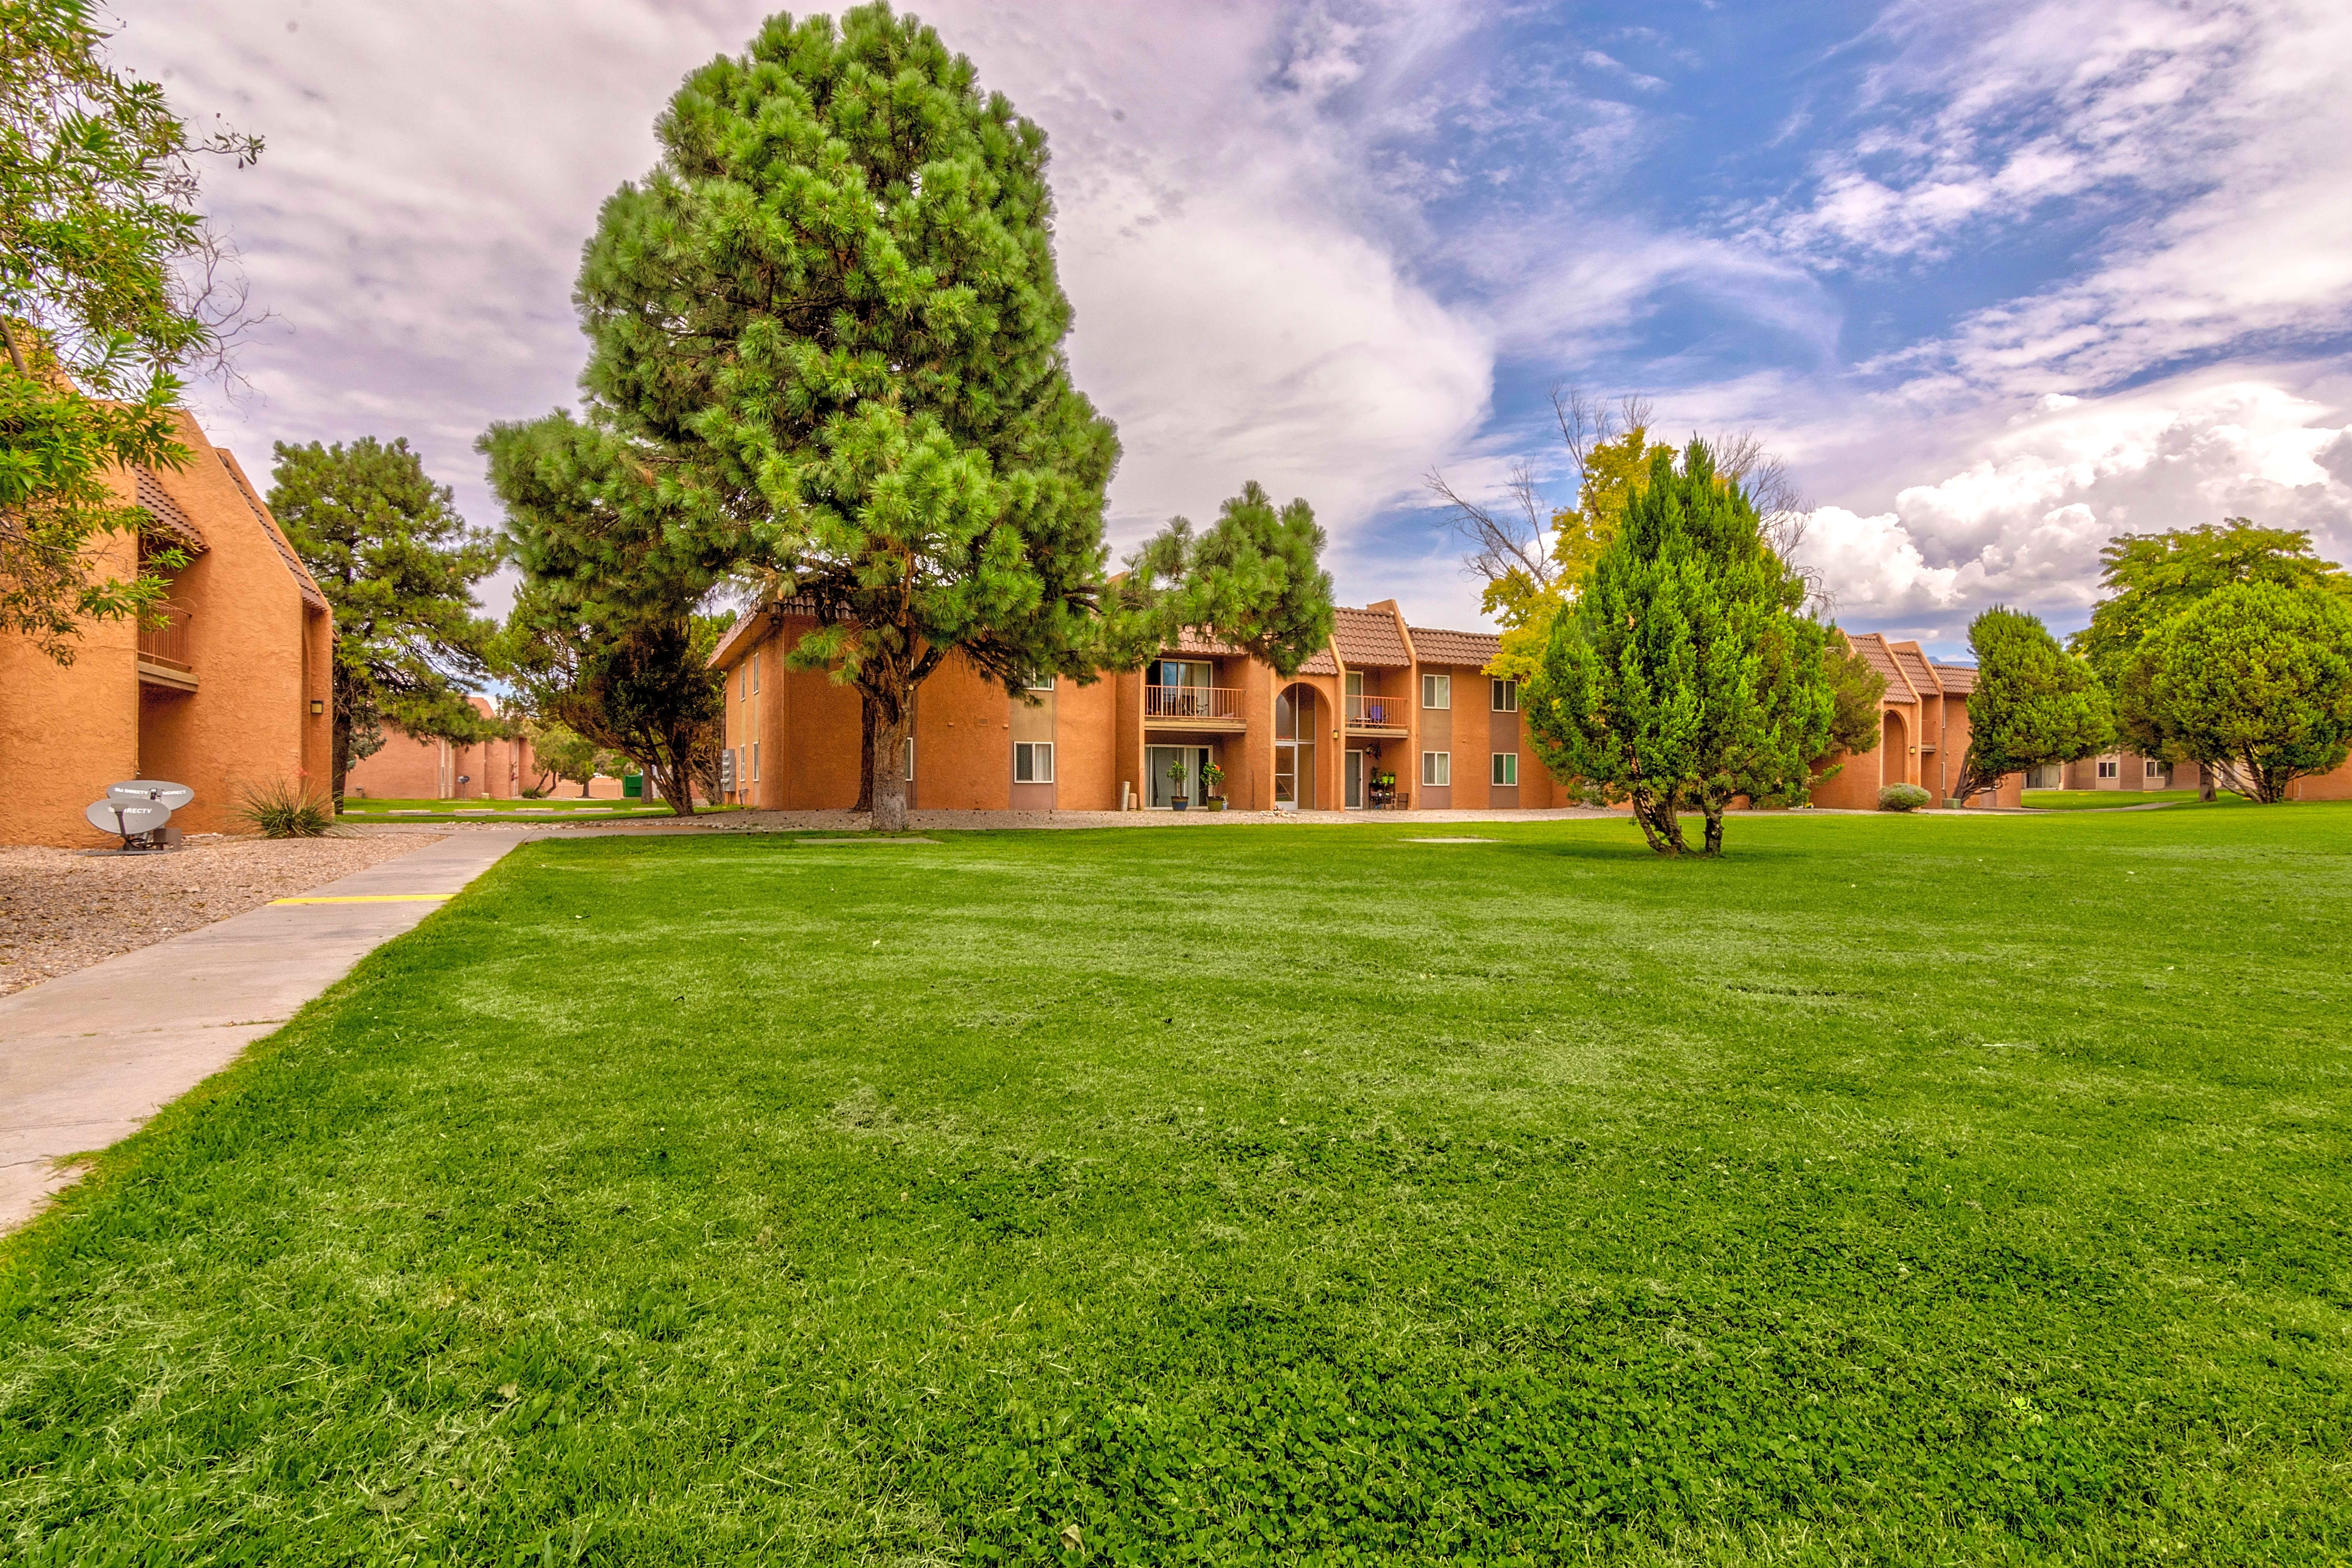 Apartments Near New Mexico Aztec Village for University of New Mexico Students in Albuquerque, NM